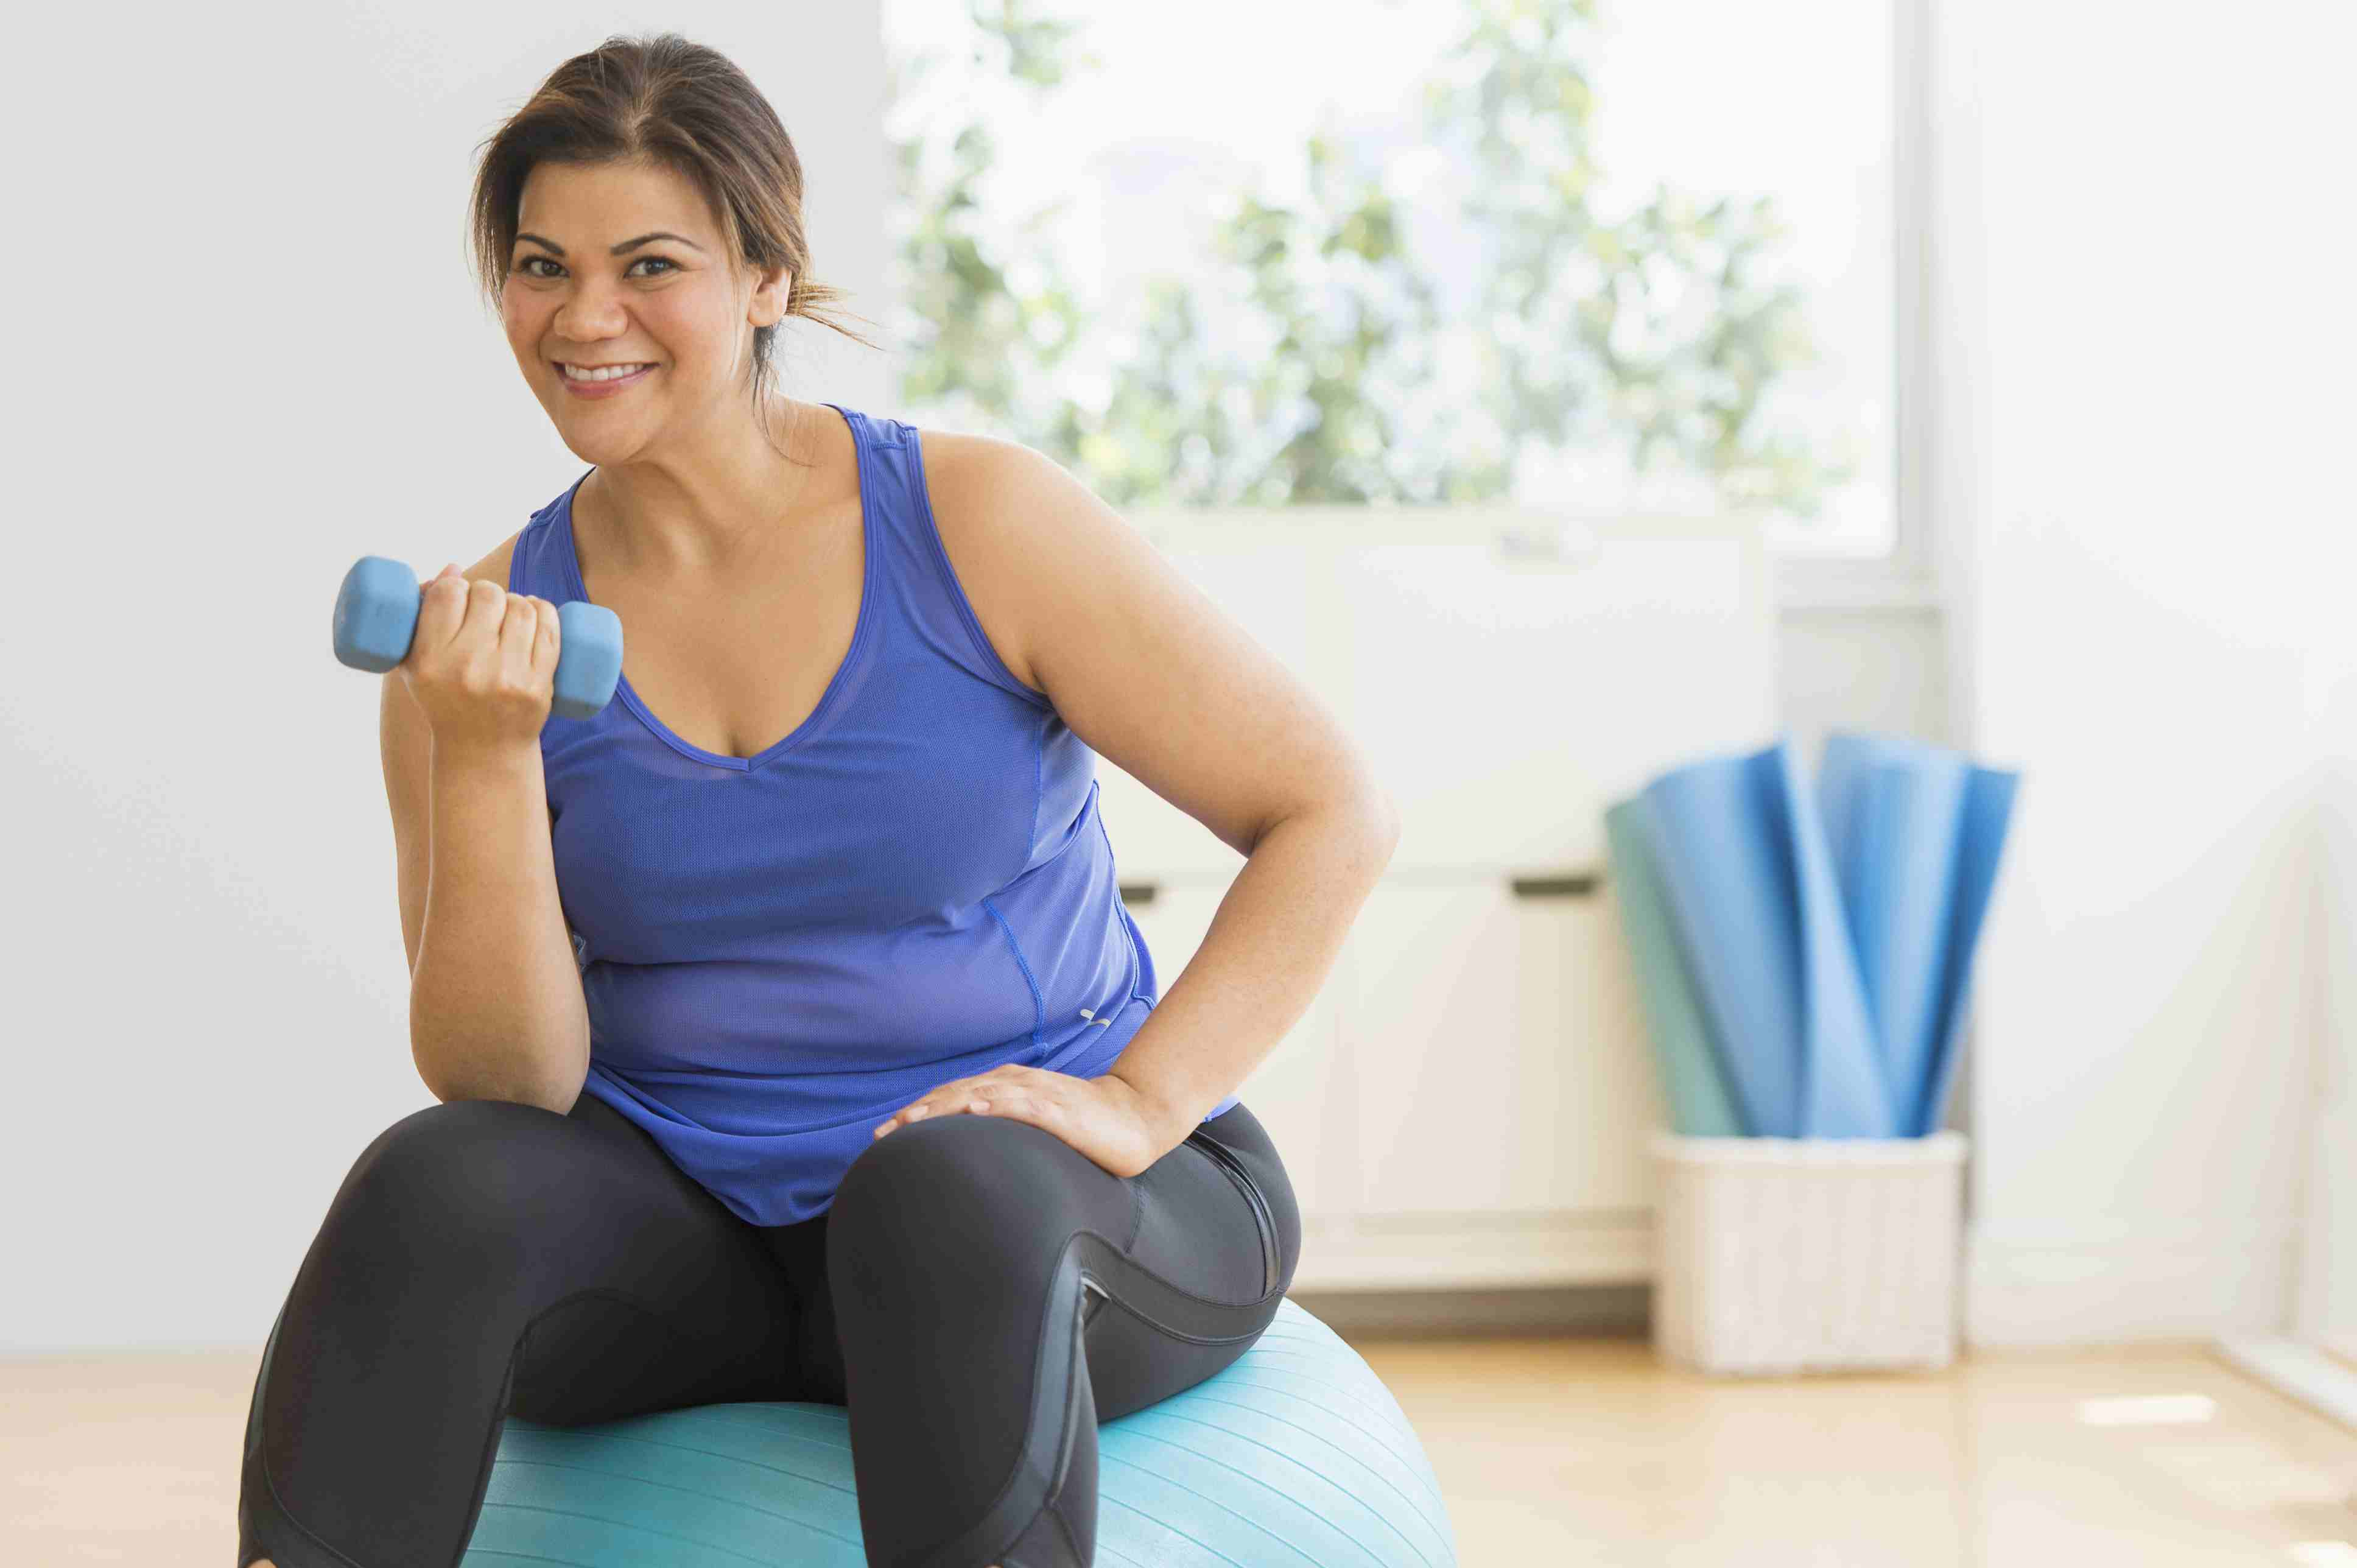 Seated Total Body For Overweight And Obese Exercisers